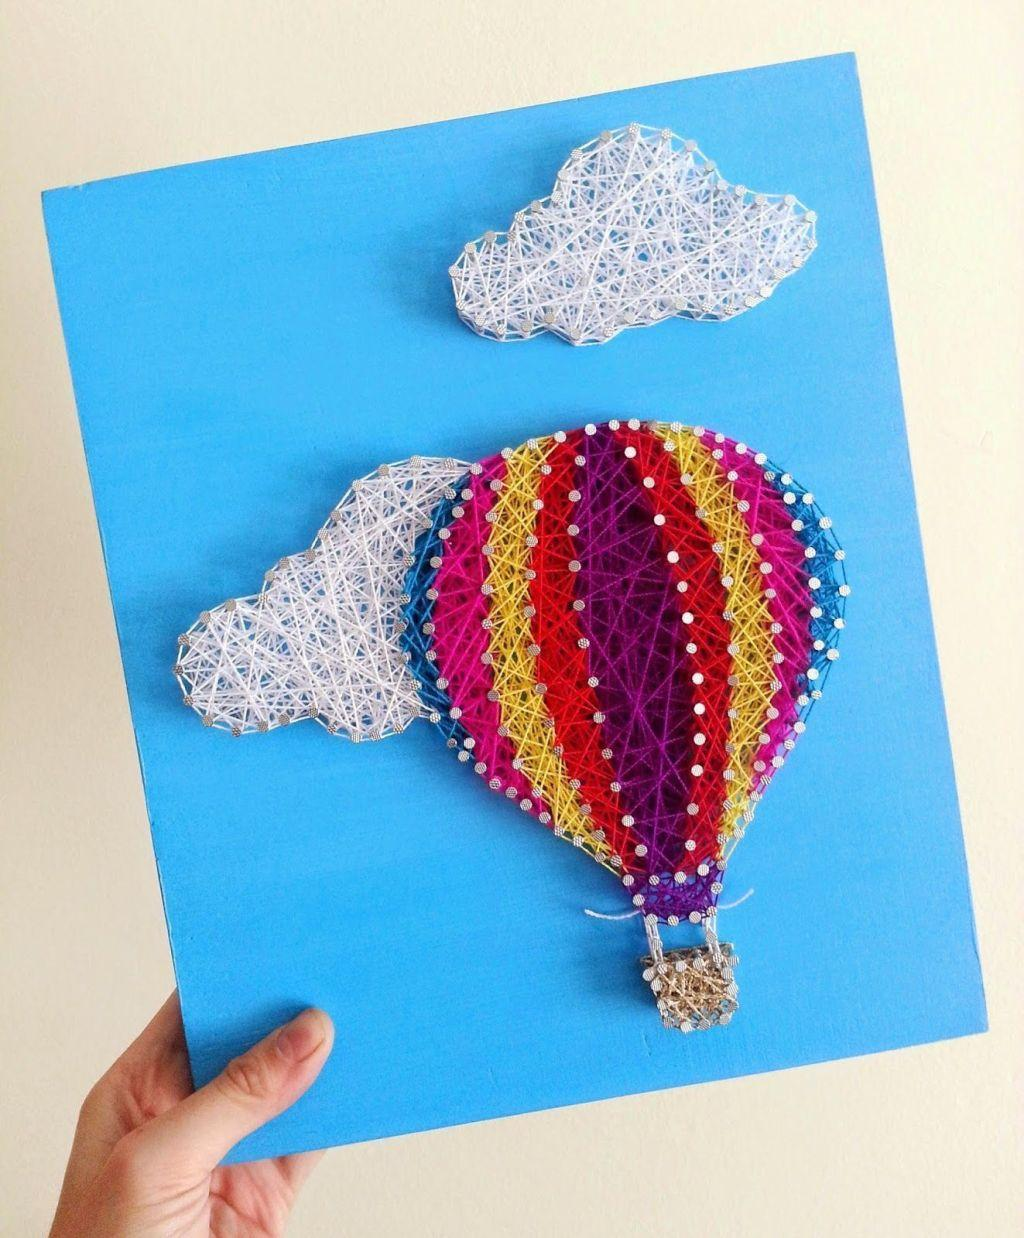 How to make handmade pictures: templates, photos and step-by-step 24